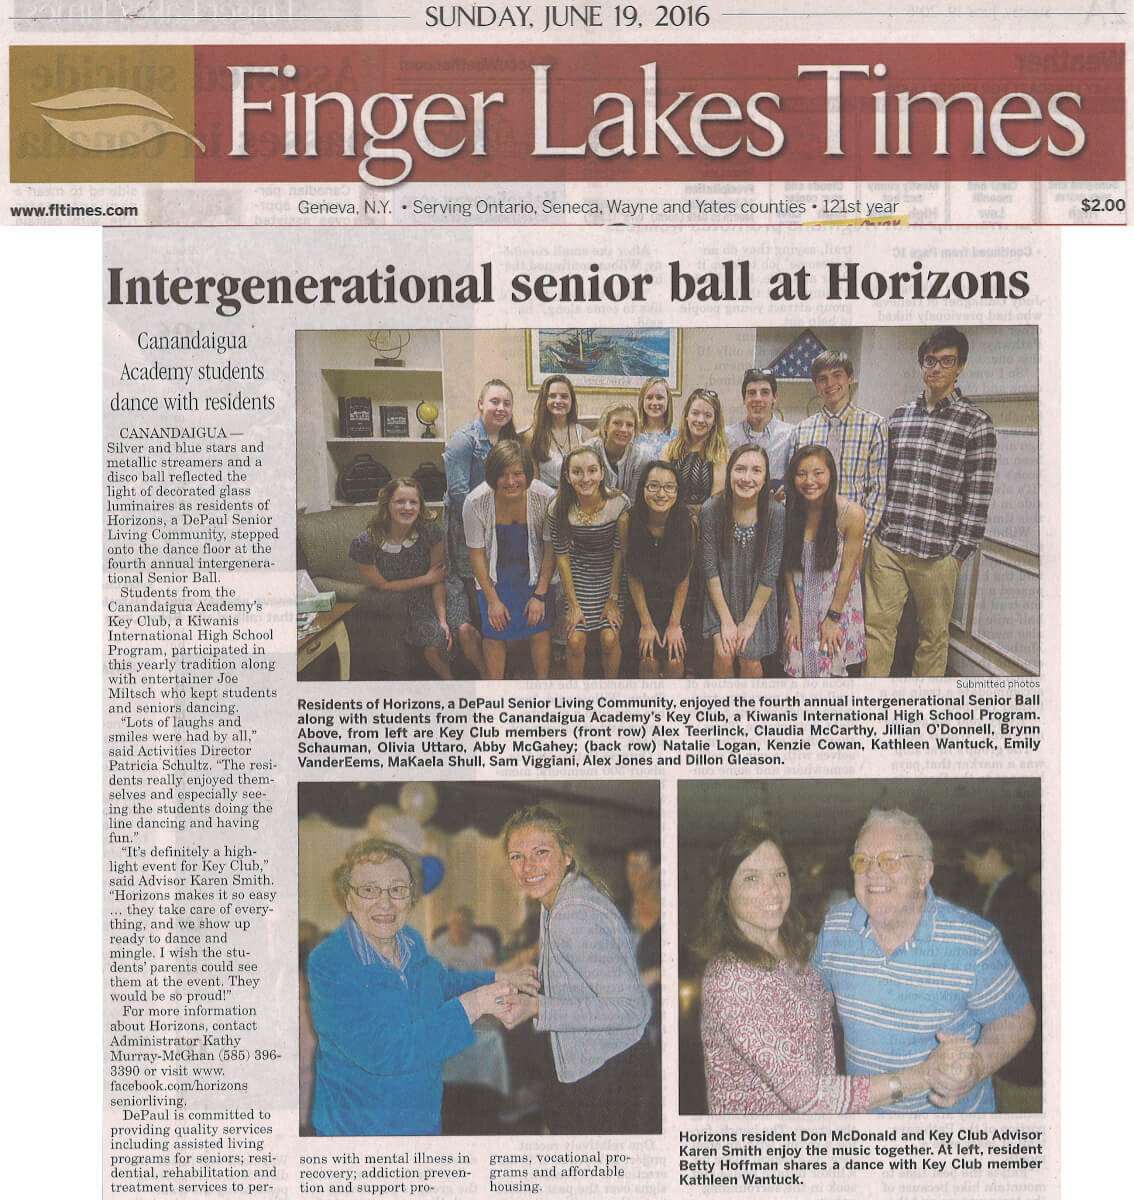 Horizons Intergenerational Senior Ball June 16, 2016 story in the Finger Lakes Times